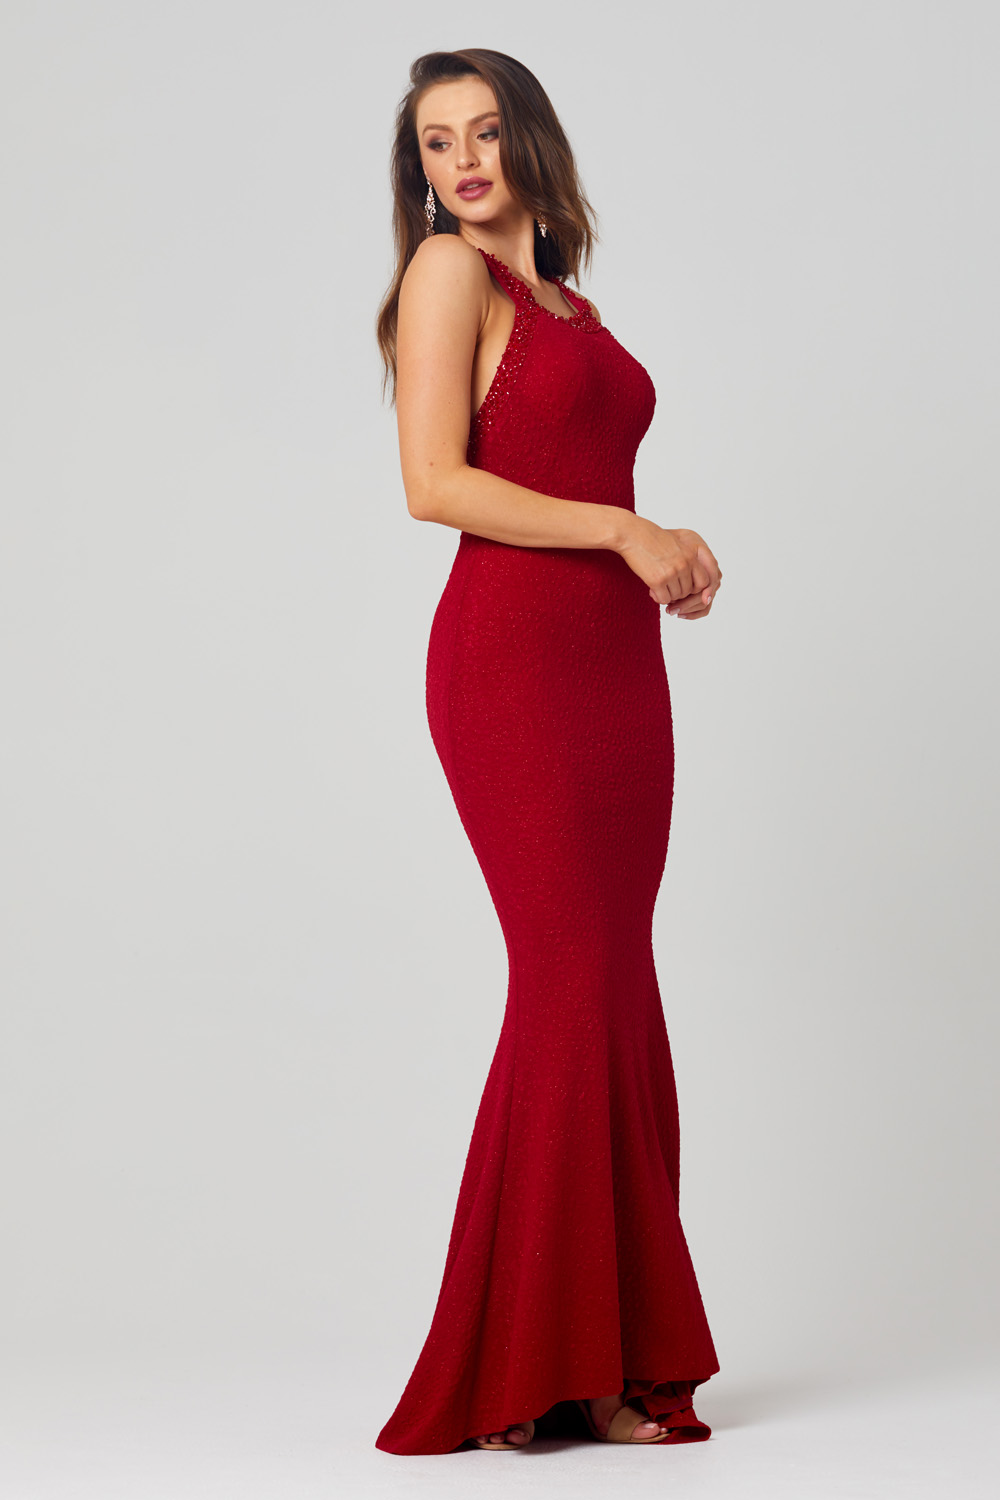 Emersyn Beaded Neckline Formal Dress - PO856 side